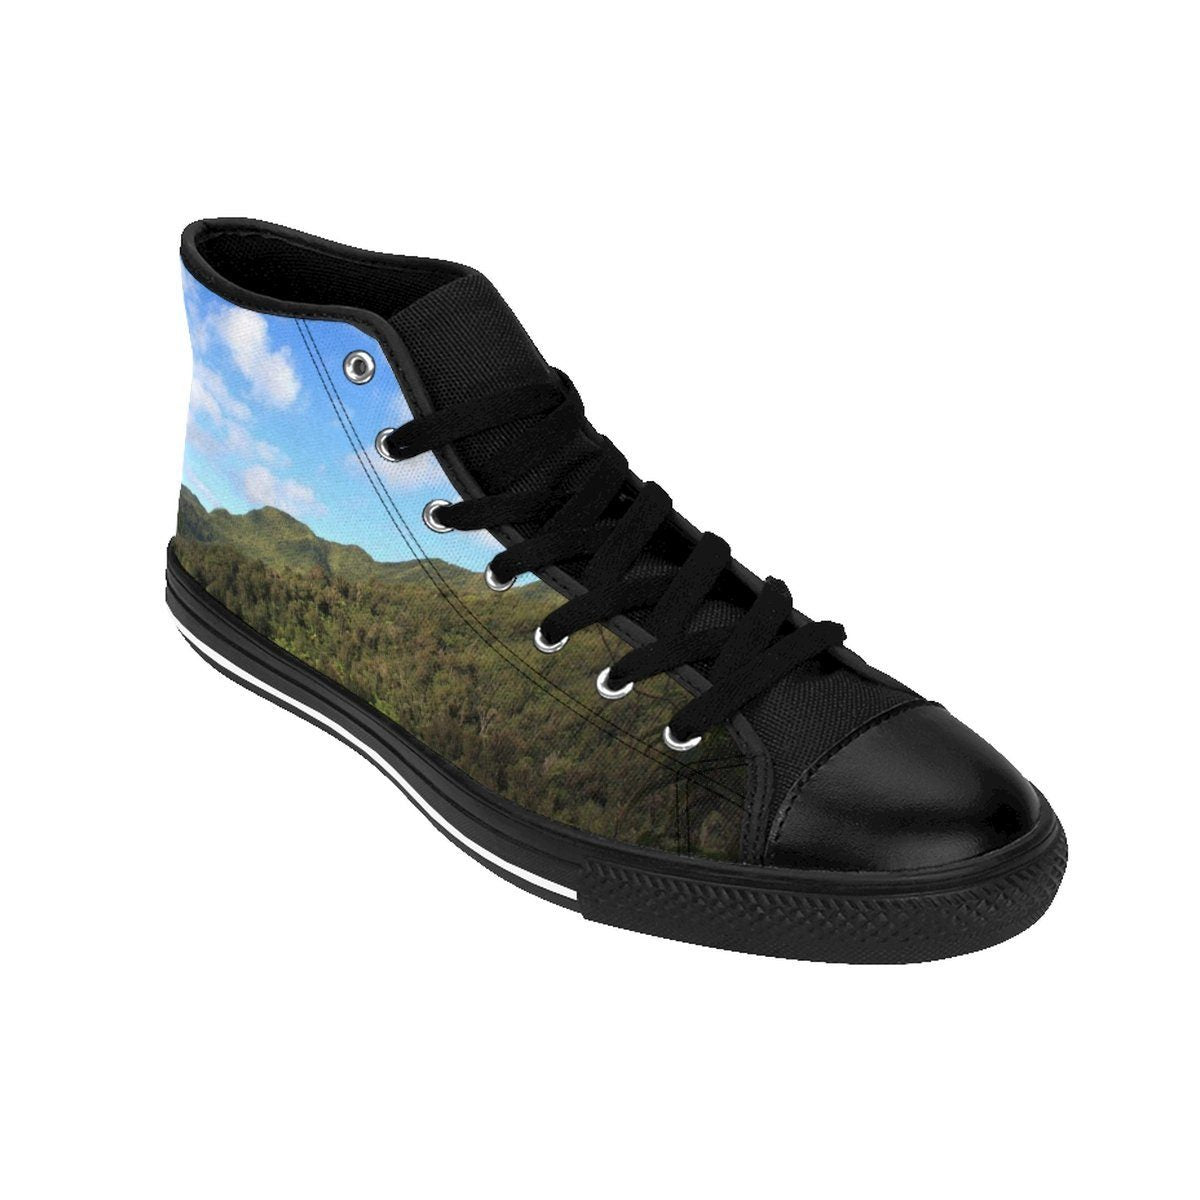 Women's High-top Sneakers - Peaks of - El Yunque rain forest PR Shoes Printify